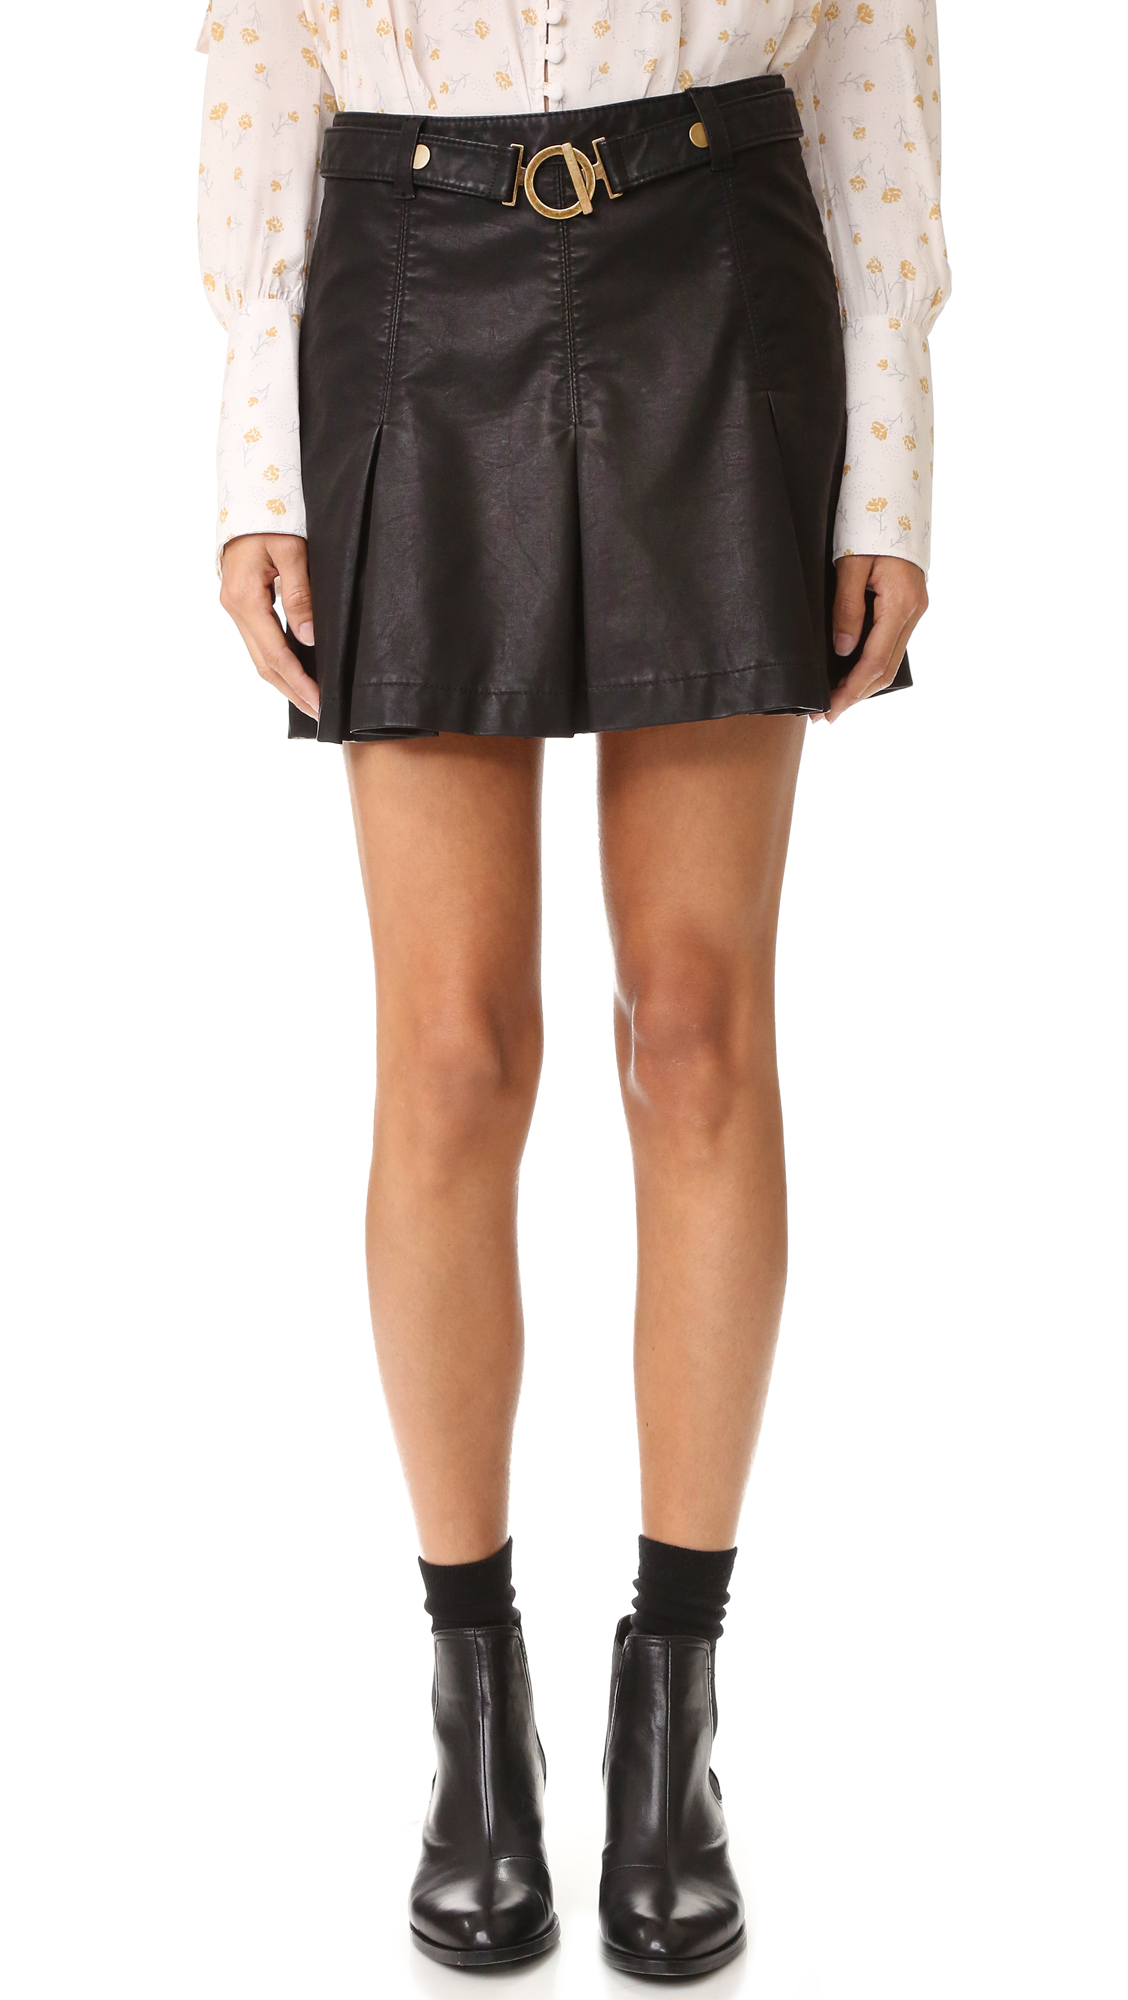 Deep box pleats create a flounced profile on this faux leather Free People skirt. Optional self belt with antiqued hardware. Hidden side zip. Lined. Fabric: Faux leather. Shell: 100% polyurethane. Lining: 100% rayon. Wash cold. Imported, China. Measurements